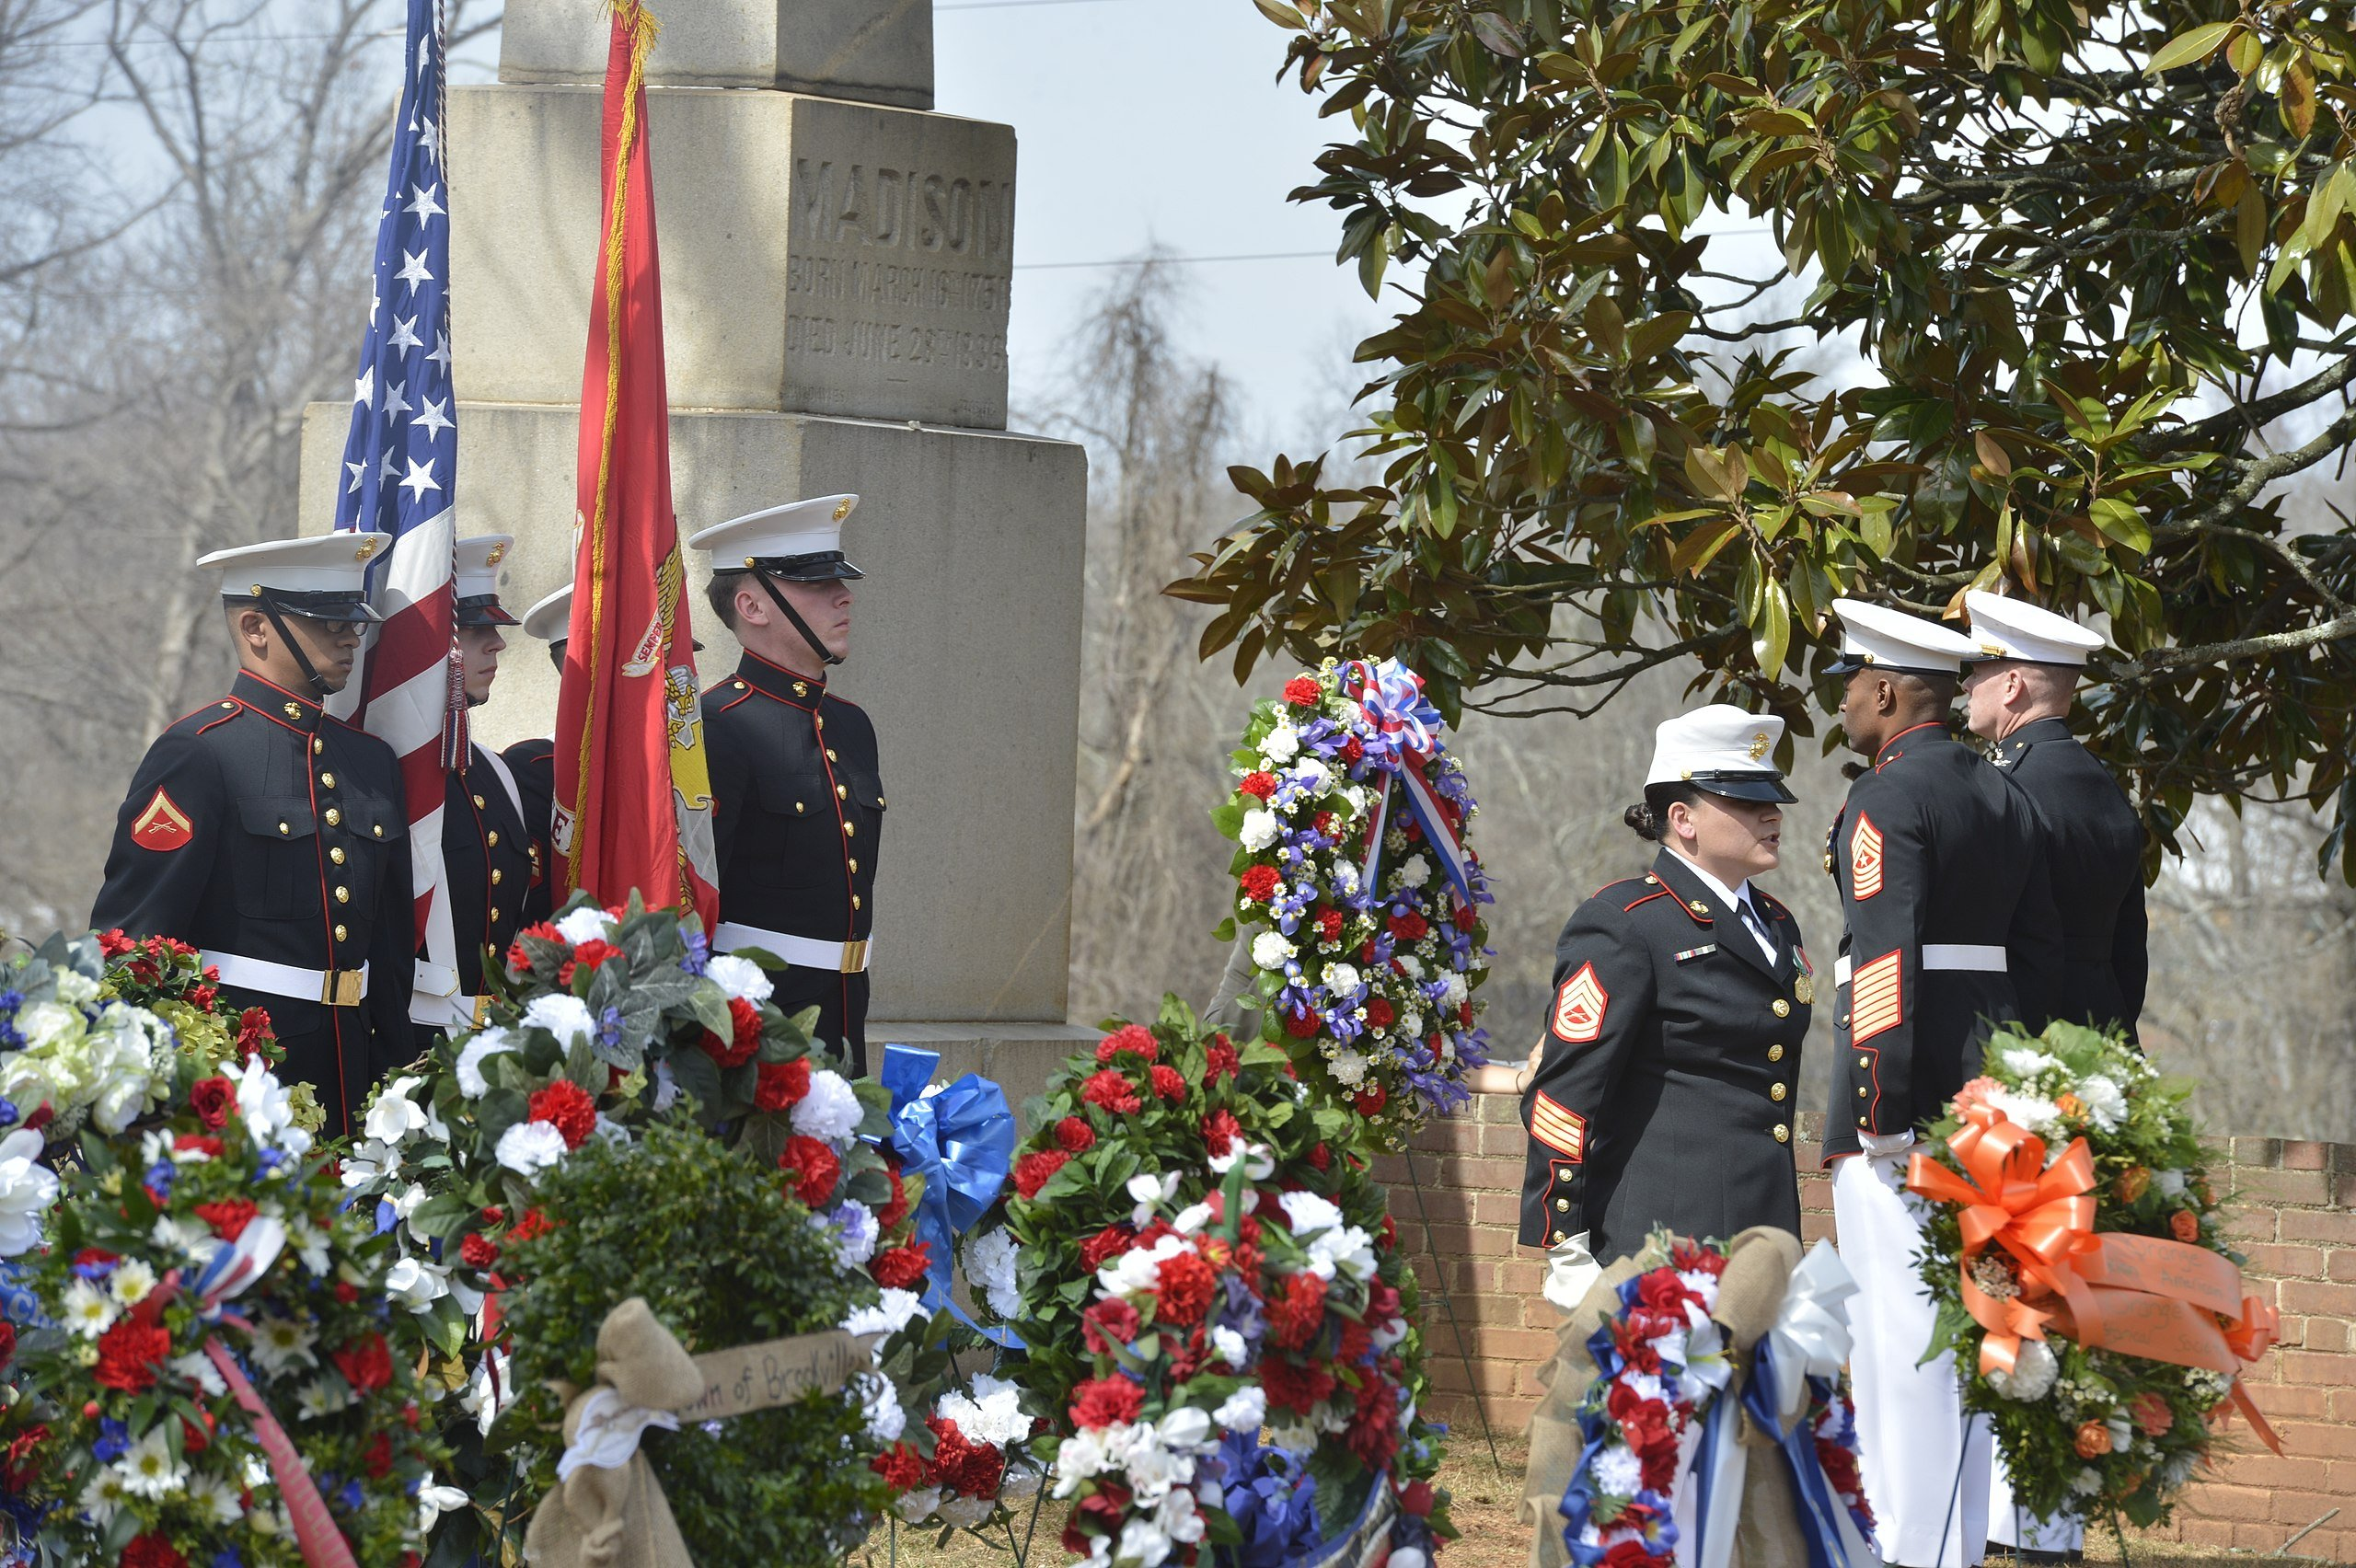 The United States Marine Corps honors the birthday of James Madison by laying a presidential wreath. Wikimedia Commons.